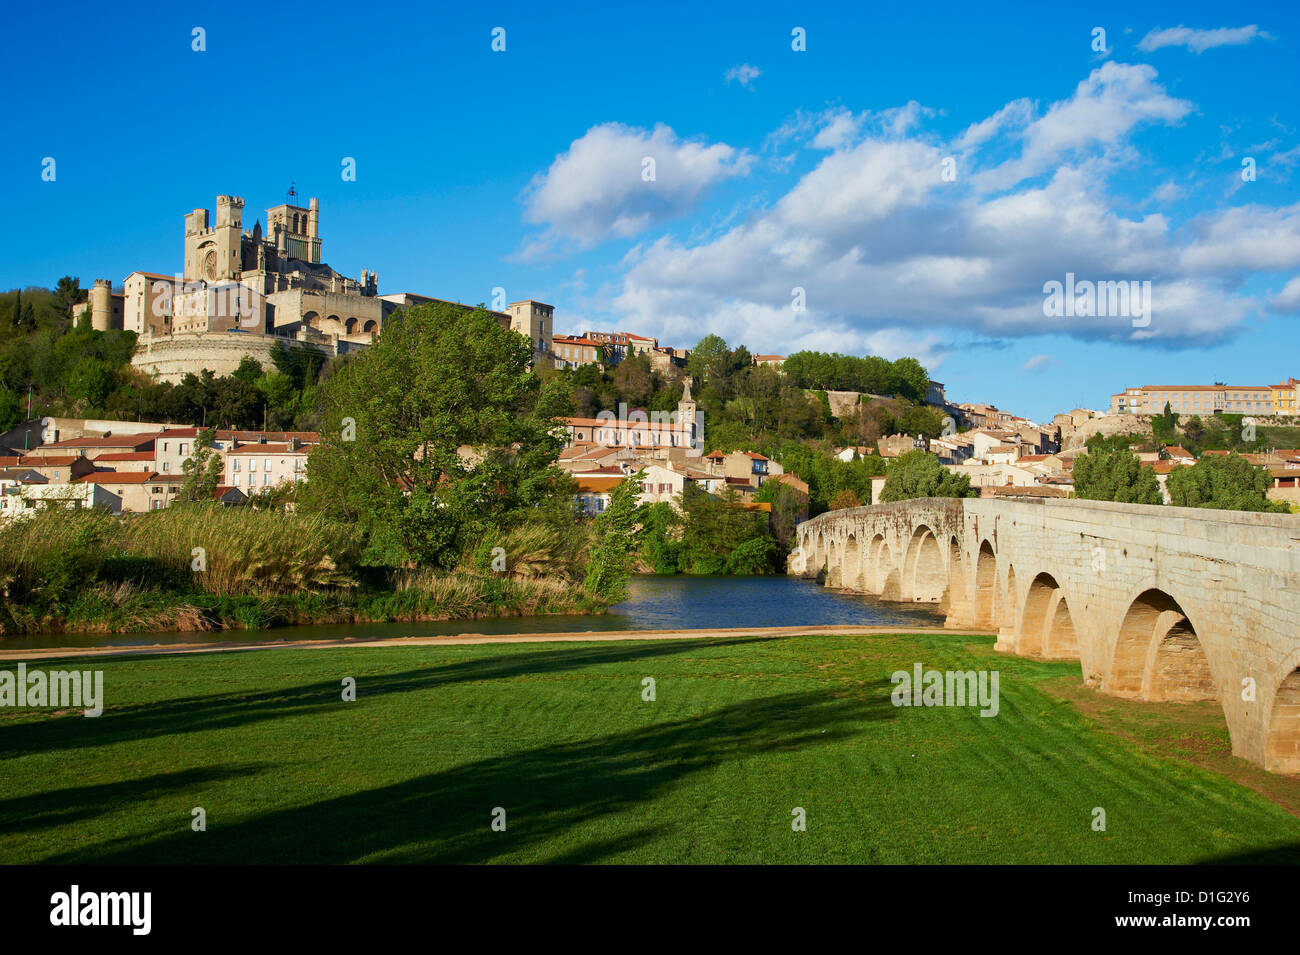 Cathedral Saint-Nazaire and Pont Vieux (Old Bridge) over the River Orb, Beziers, Herault, Languedoc, France, Europe - Stock Image